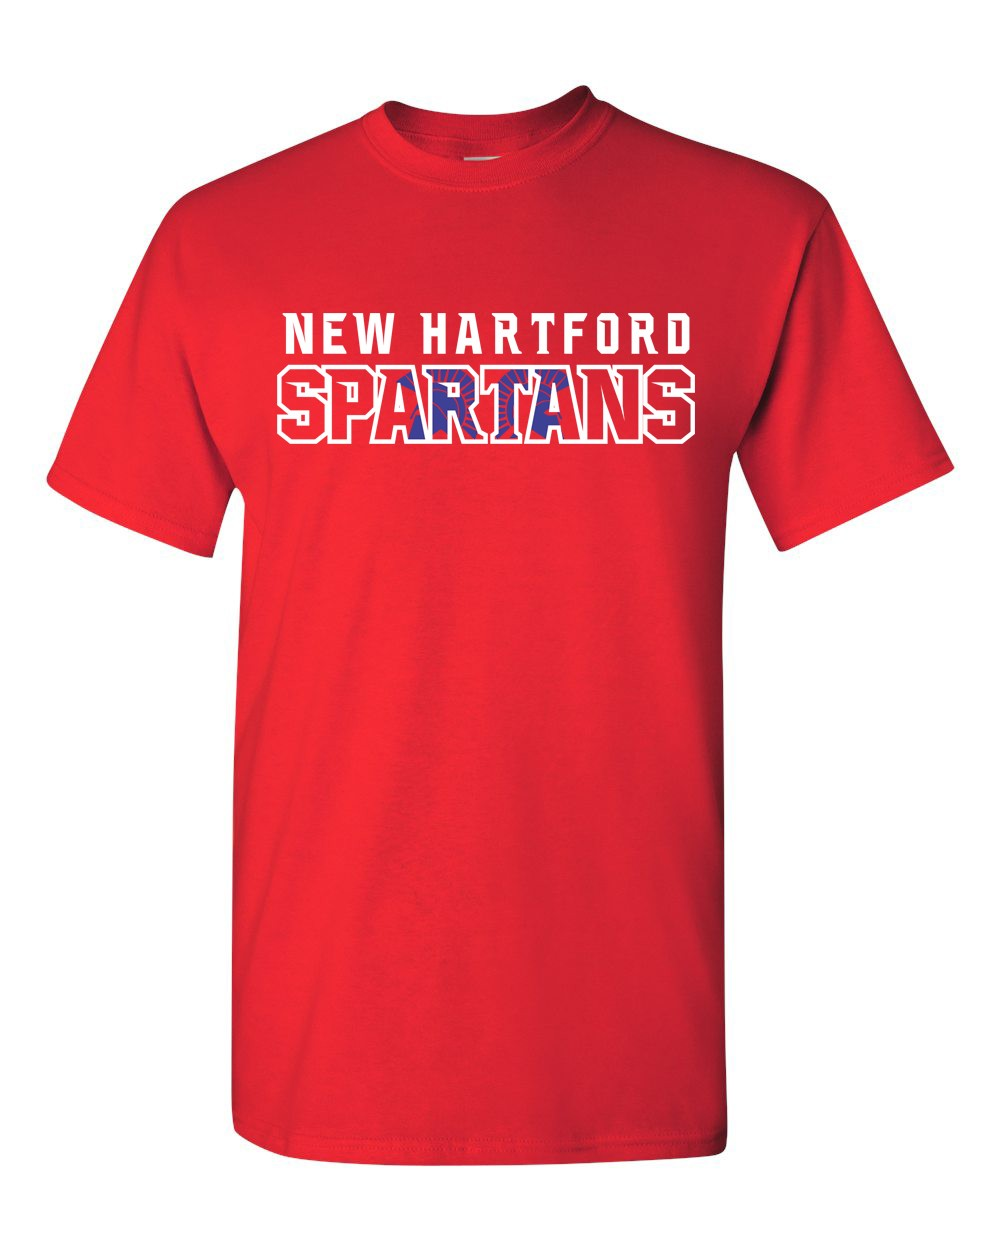 New Hartford Spartans Bella Canvas Tee